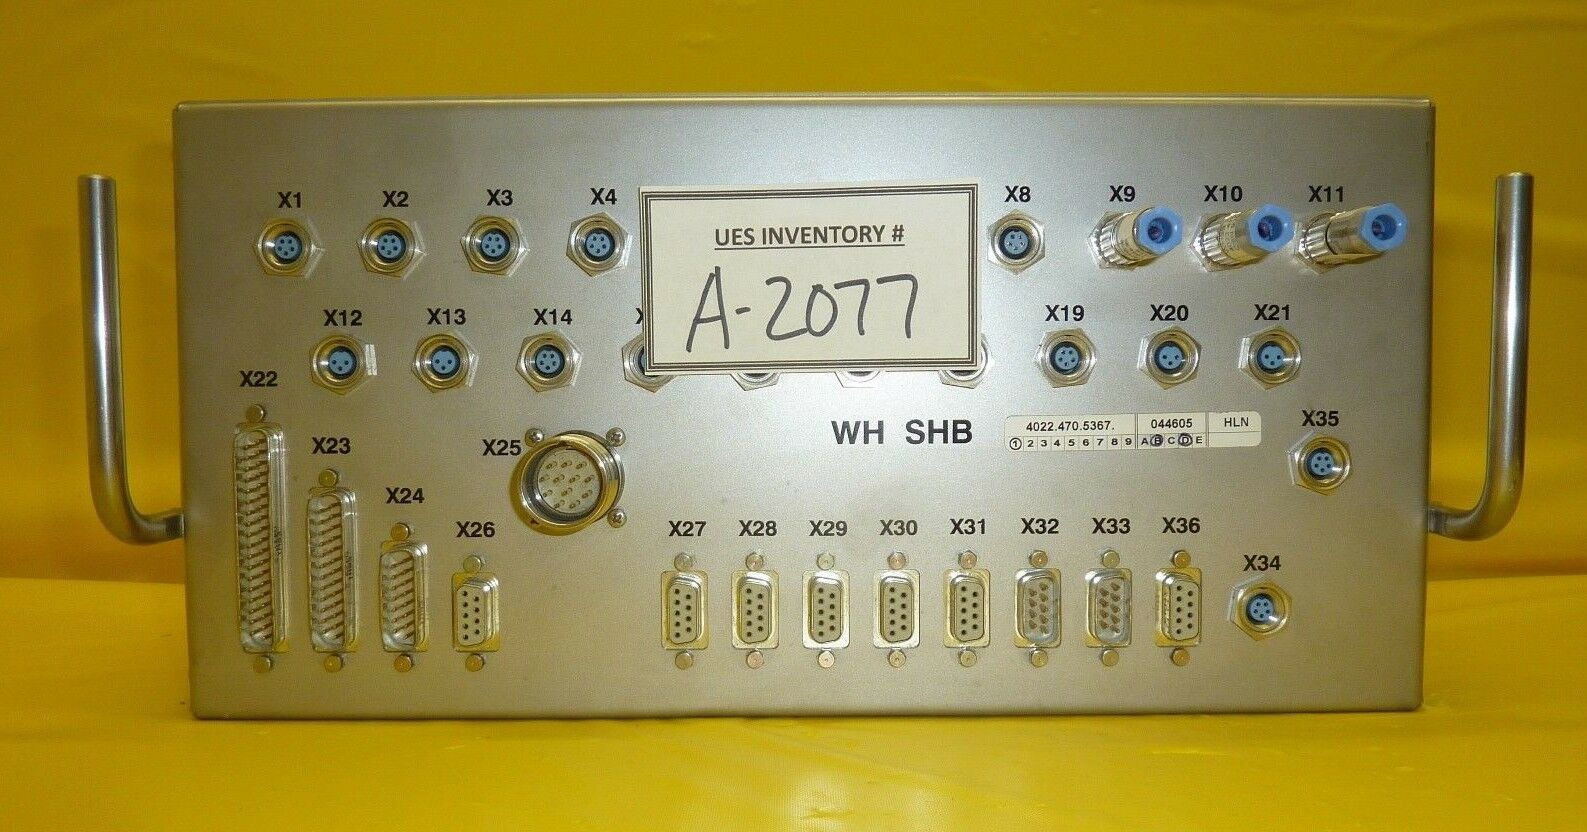 ASML 4022.470.6295 RH Handling Box SHB-RH Nikon NES1 Mini Stepper Used Working